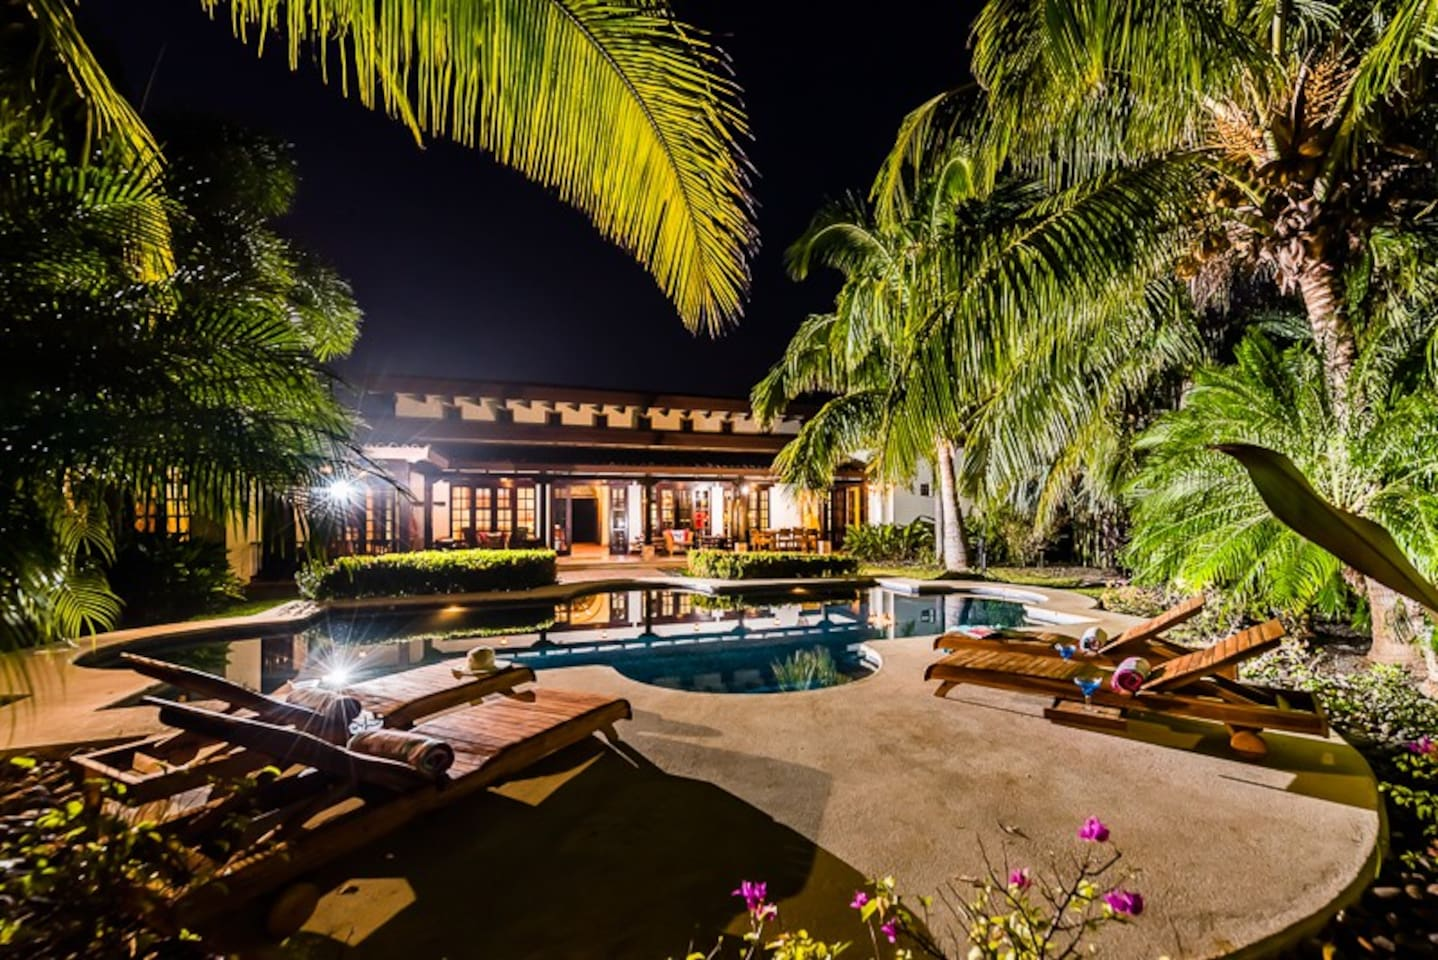 View of the pool and back porch at  night